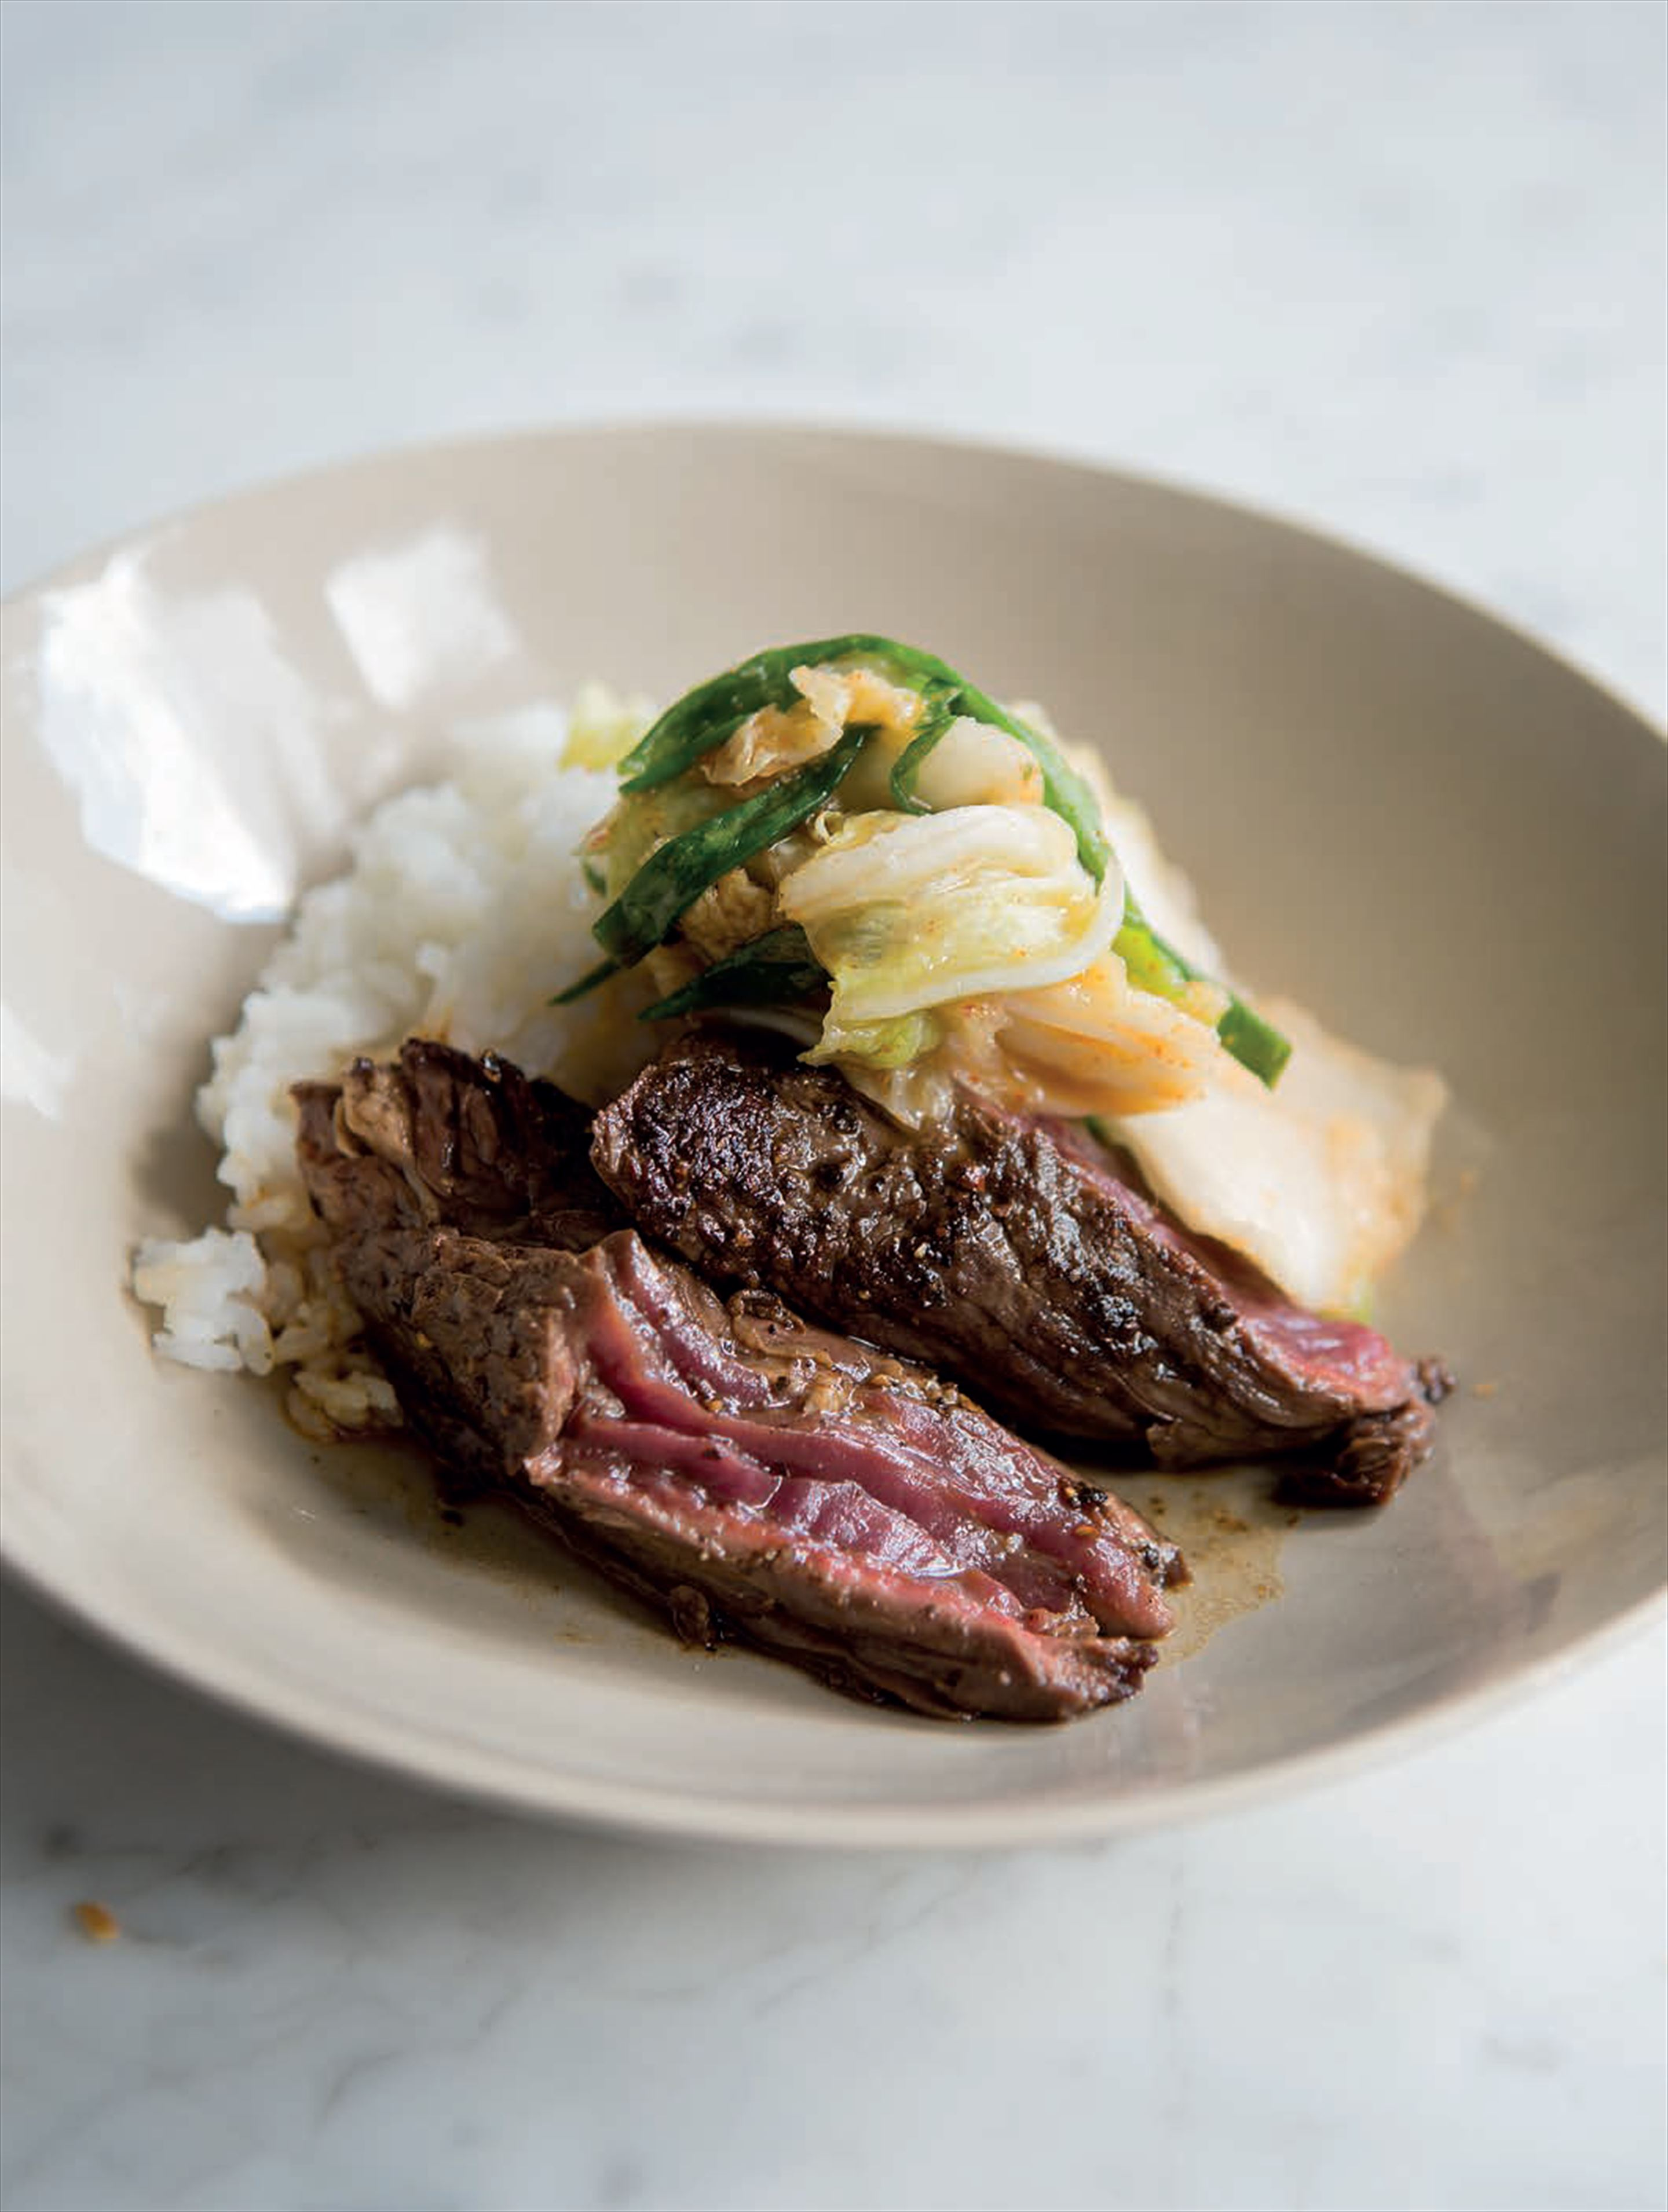 Skirt steak with kimchi